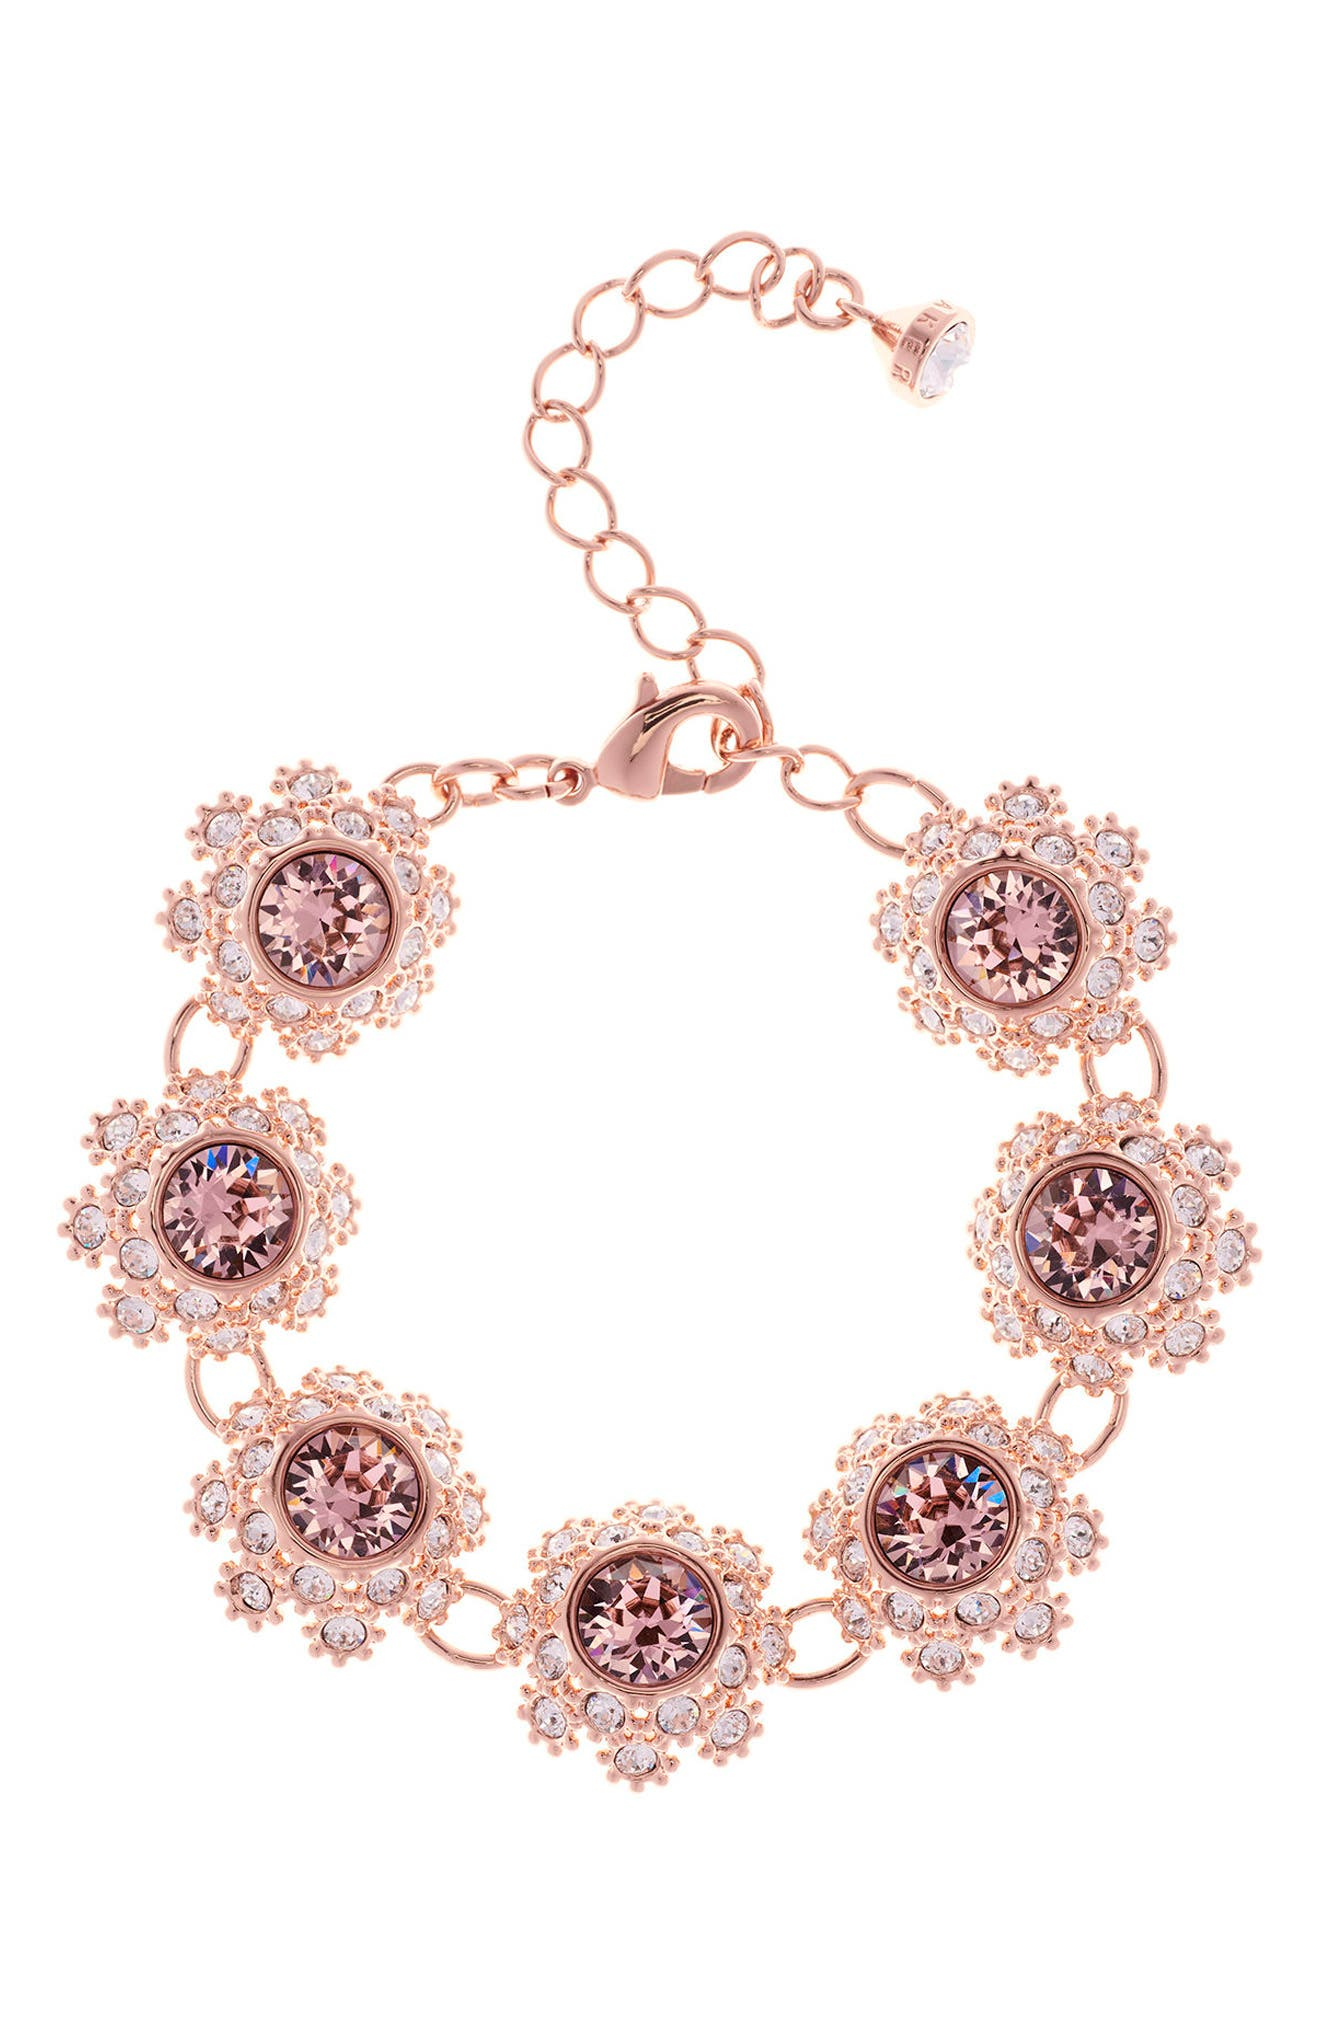 Crystal Daisy Lace Station Bracelet,                         Main,                         color, Pink